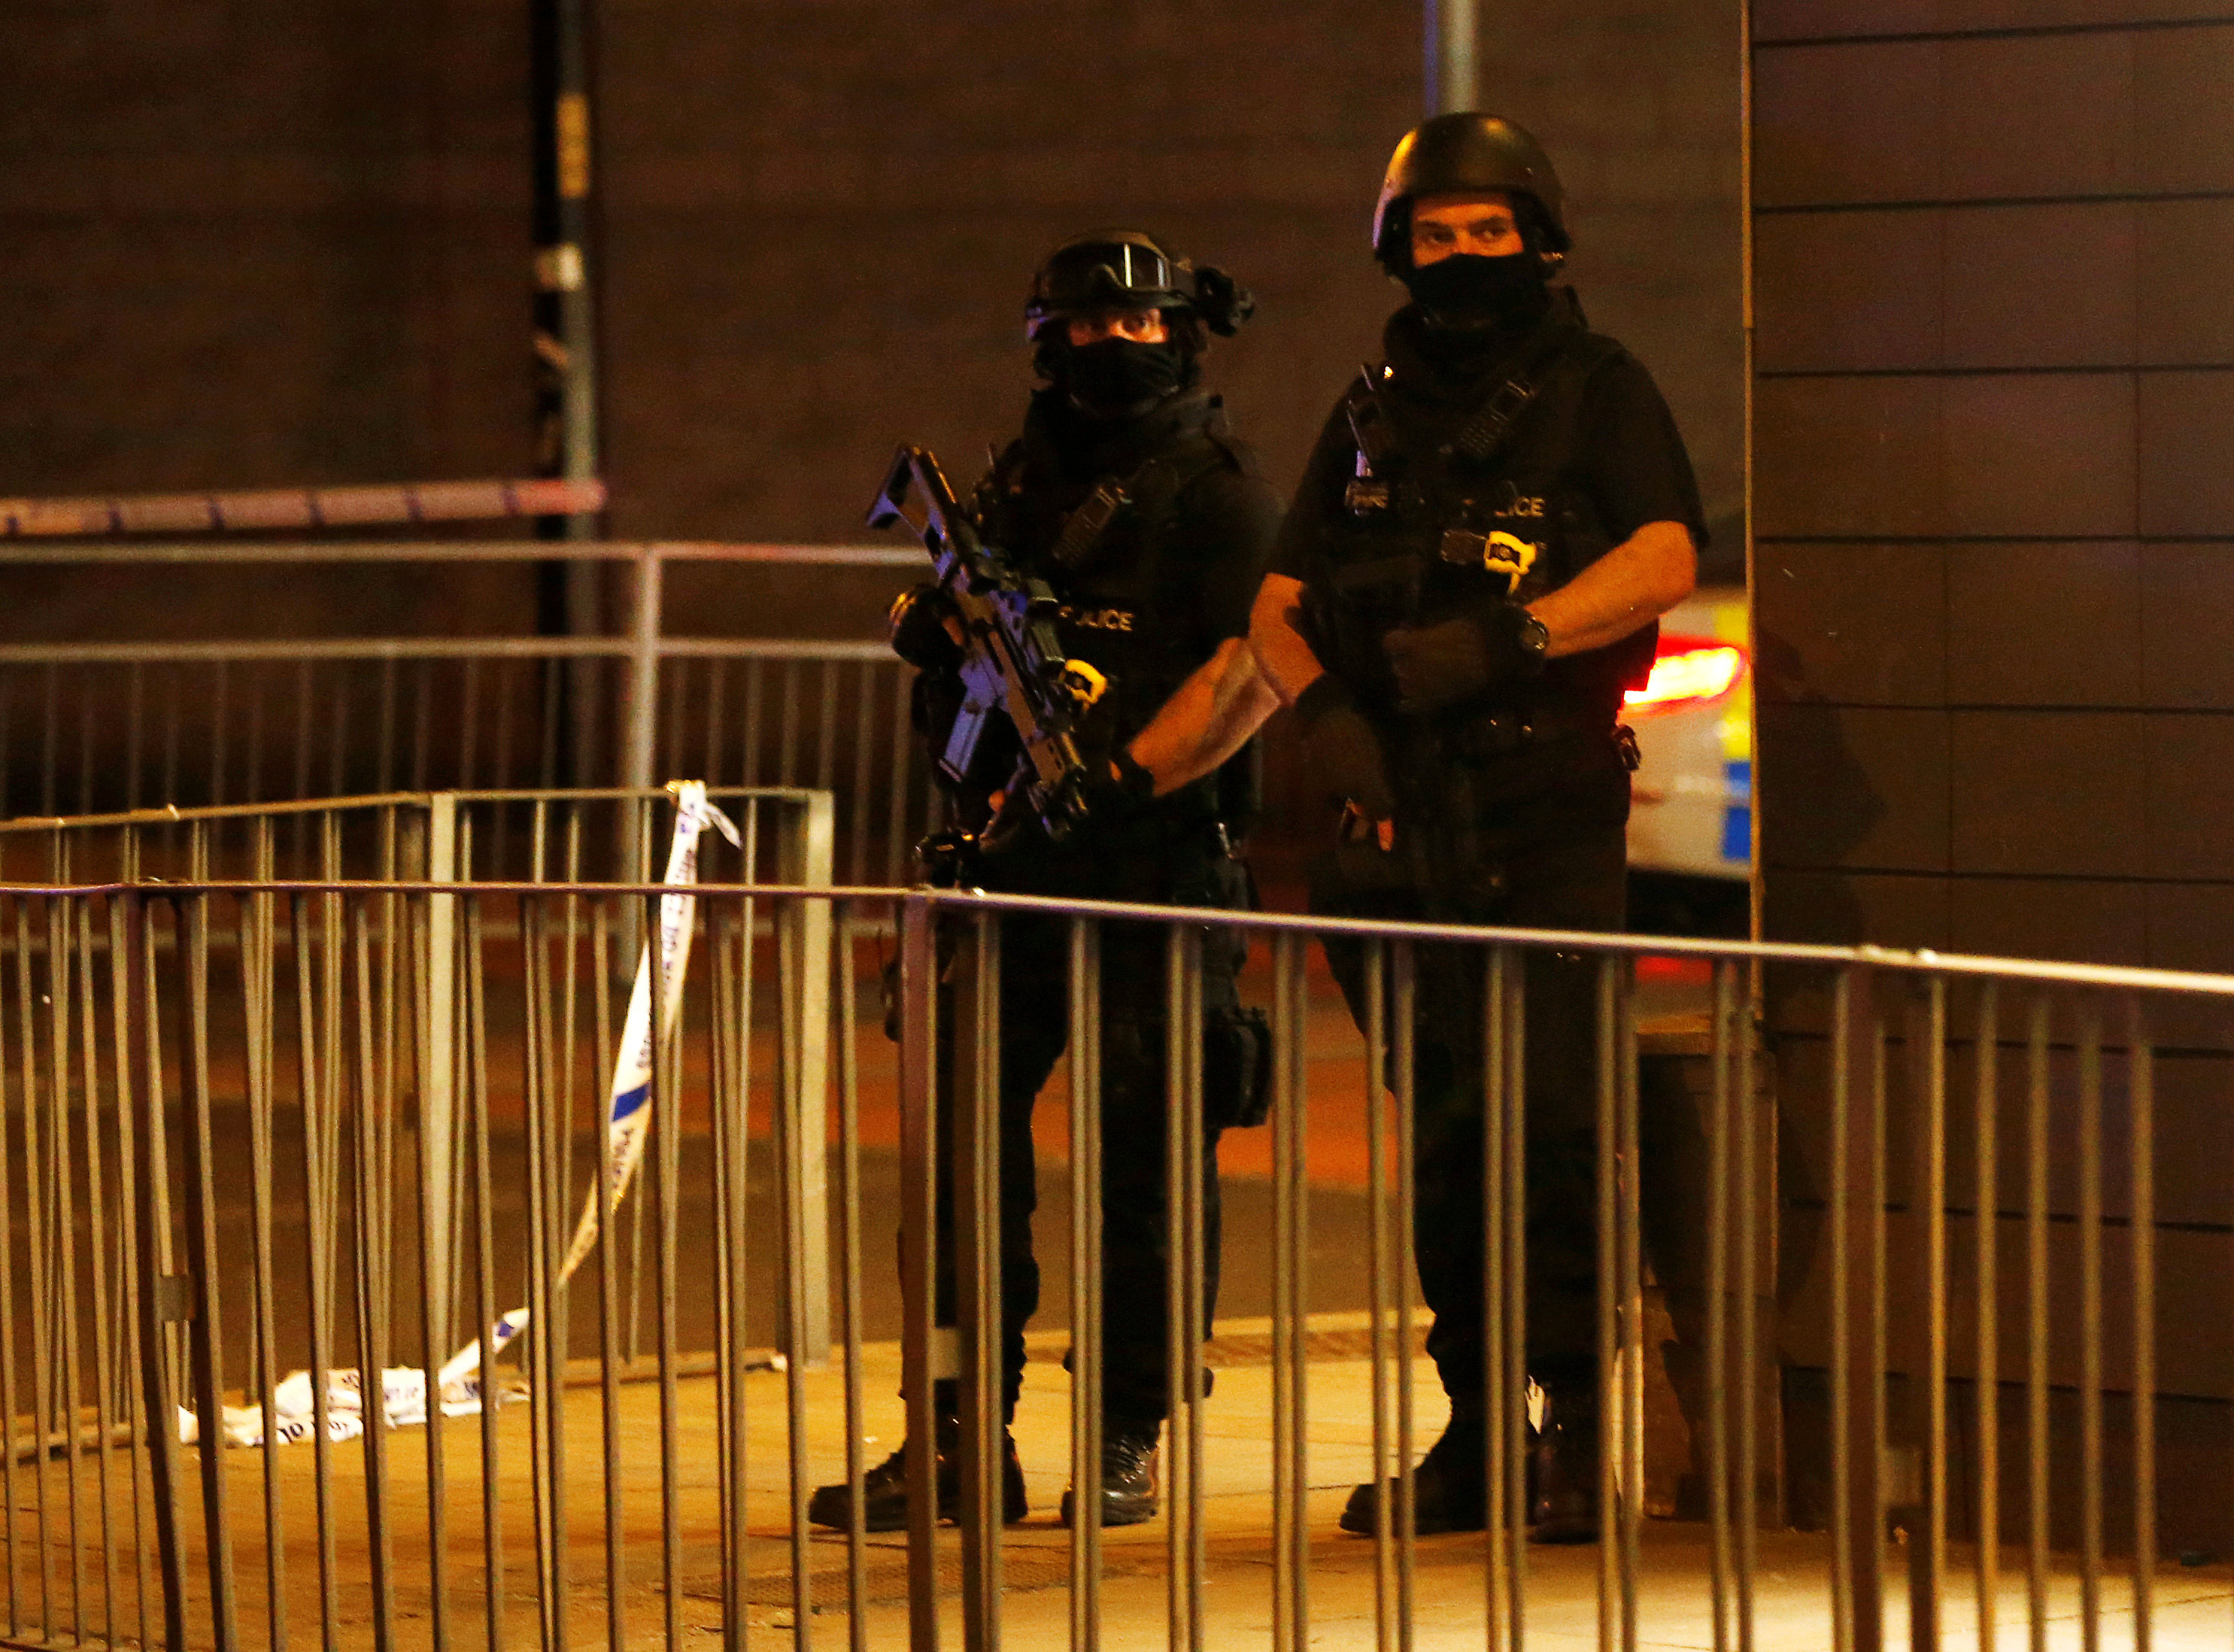 Armed police officers stand next to a police cordon outside the Manchester Arena, where U.S. singer Ariana Grande had been performing, in Manchester, northern England, Britain, May 23, 2017. REUTERS/Andrew